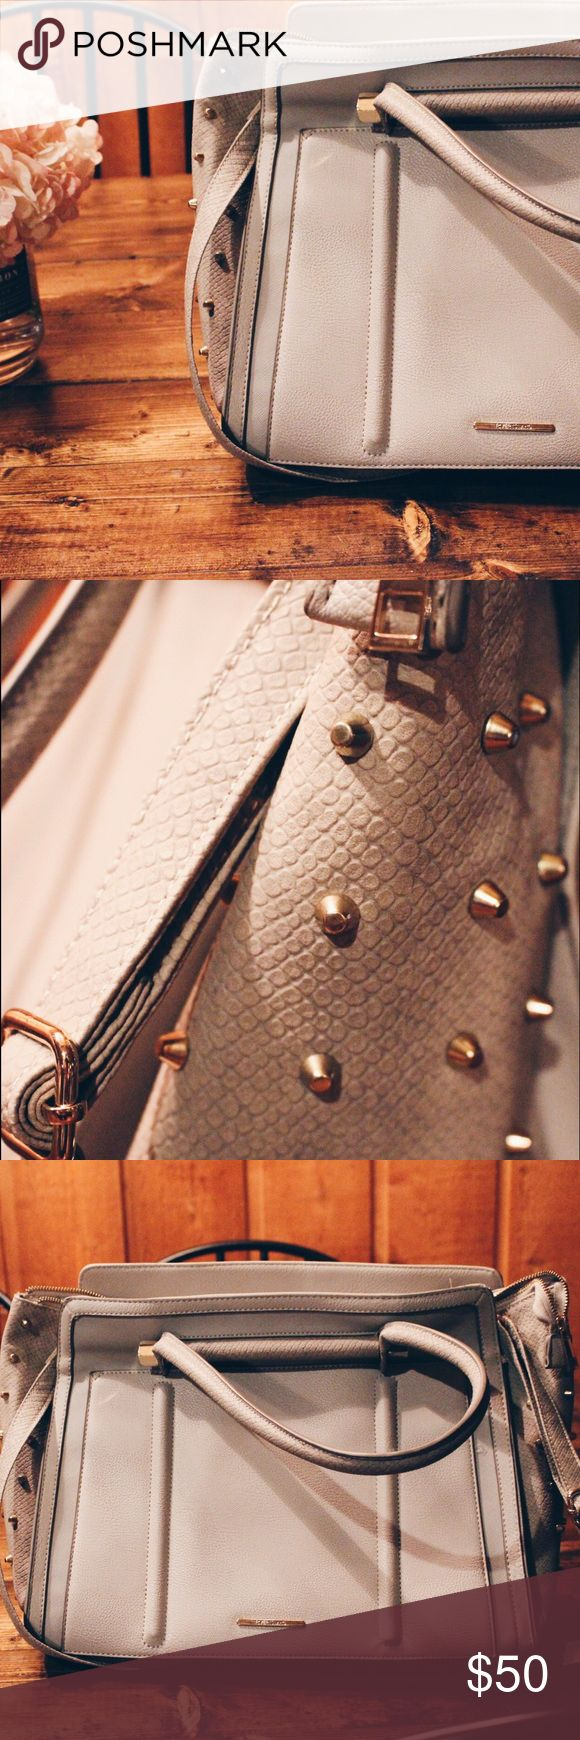 River Island Raised Studded Tote This tote from River Island Is the perfect statement piece with it's fun gold studs. River Island Bags Totes